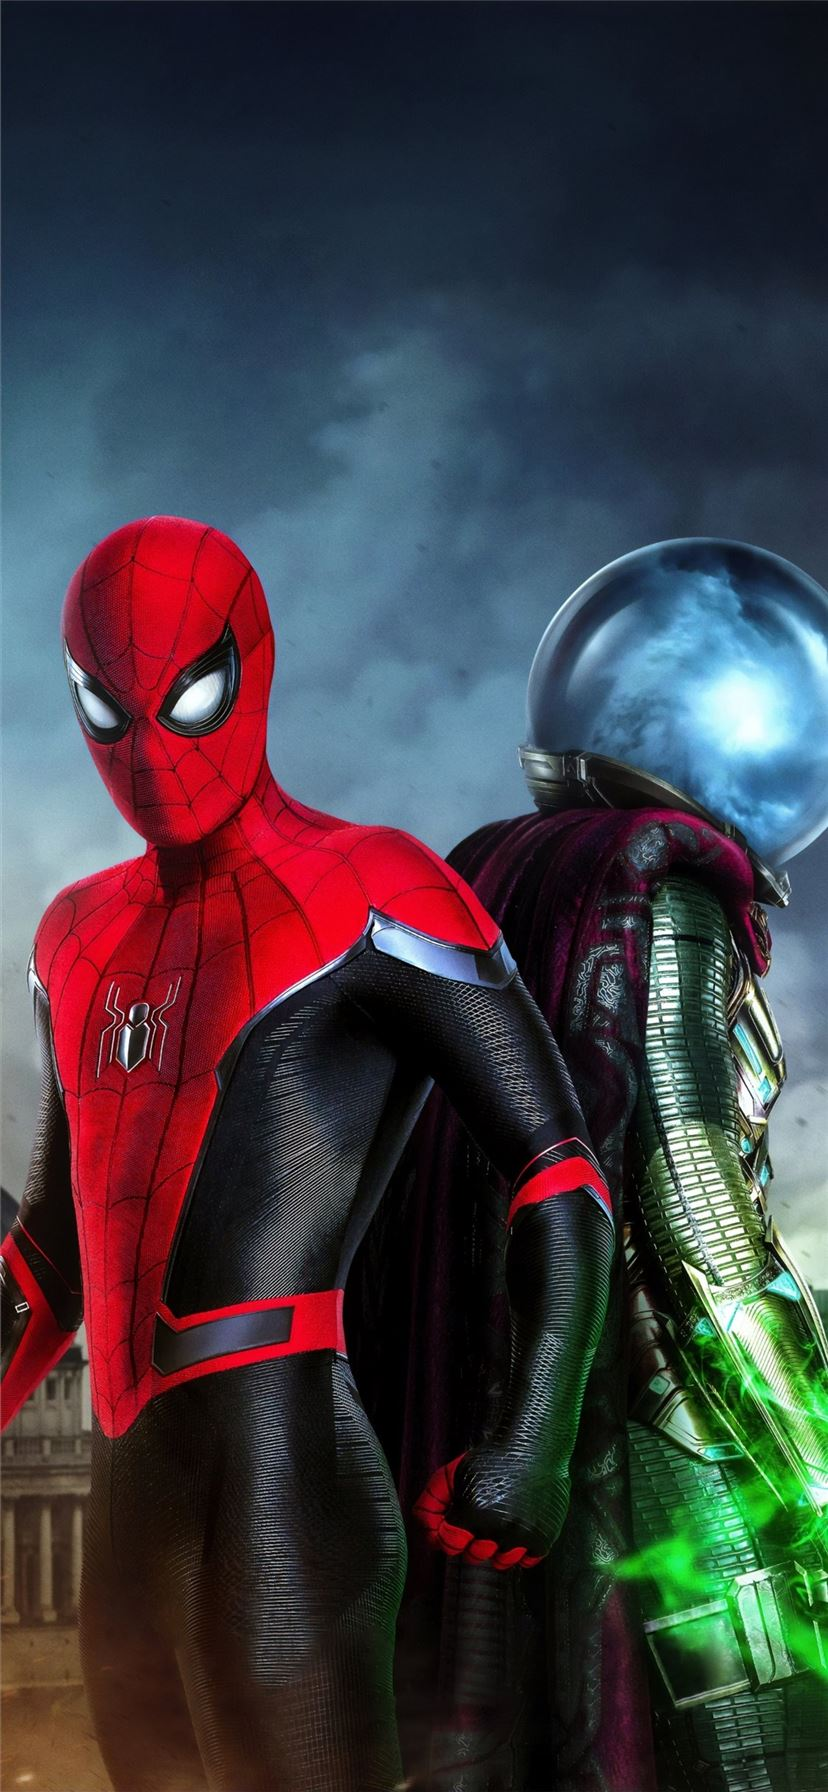 Spiderman Far From Home Movie 4k Iphone 11 Wallpapers Free